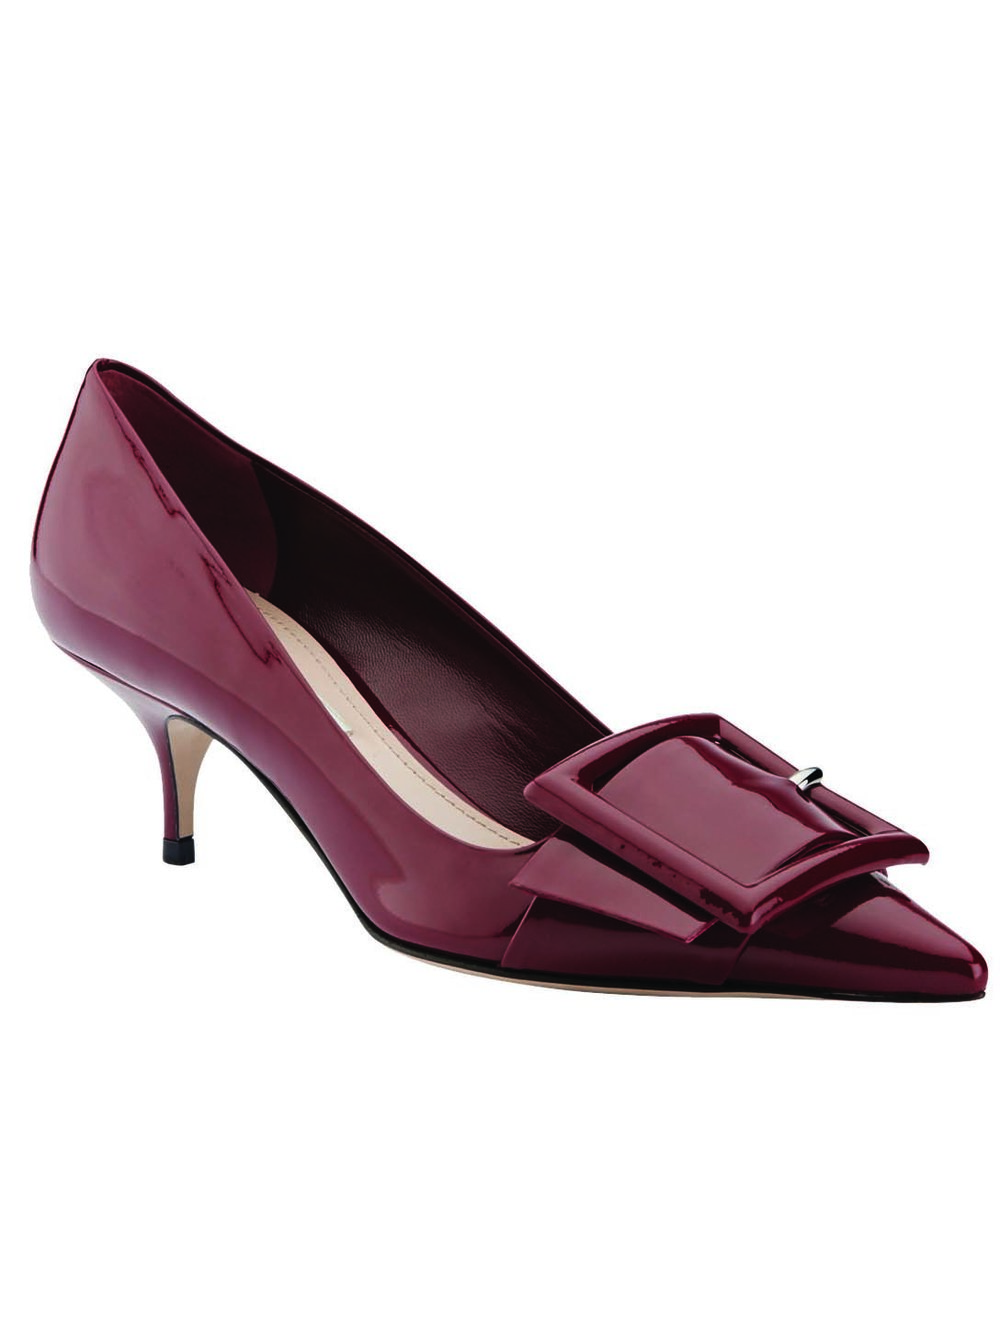 Miu Miu Patent Leather Point-Toe Buckle Pumps $850